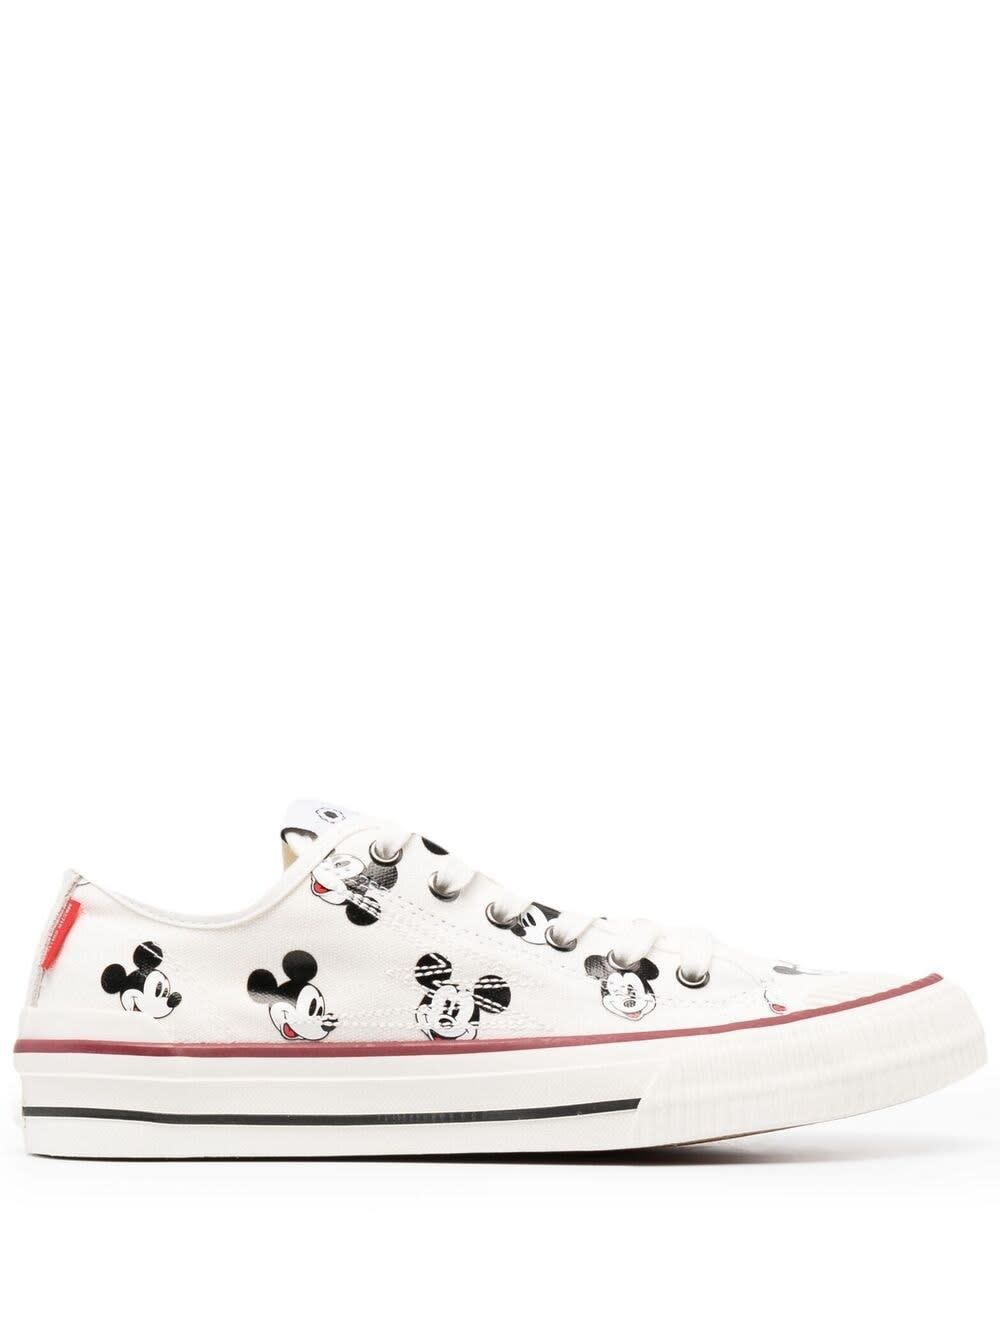 M.O.A. master of arts White Canvas Mickey Mouse Sneakers